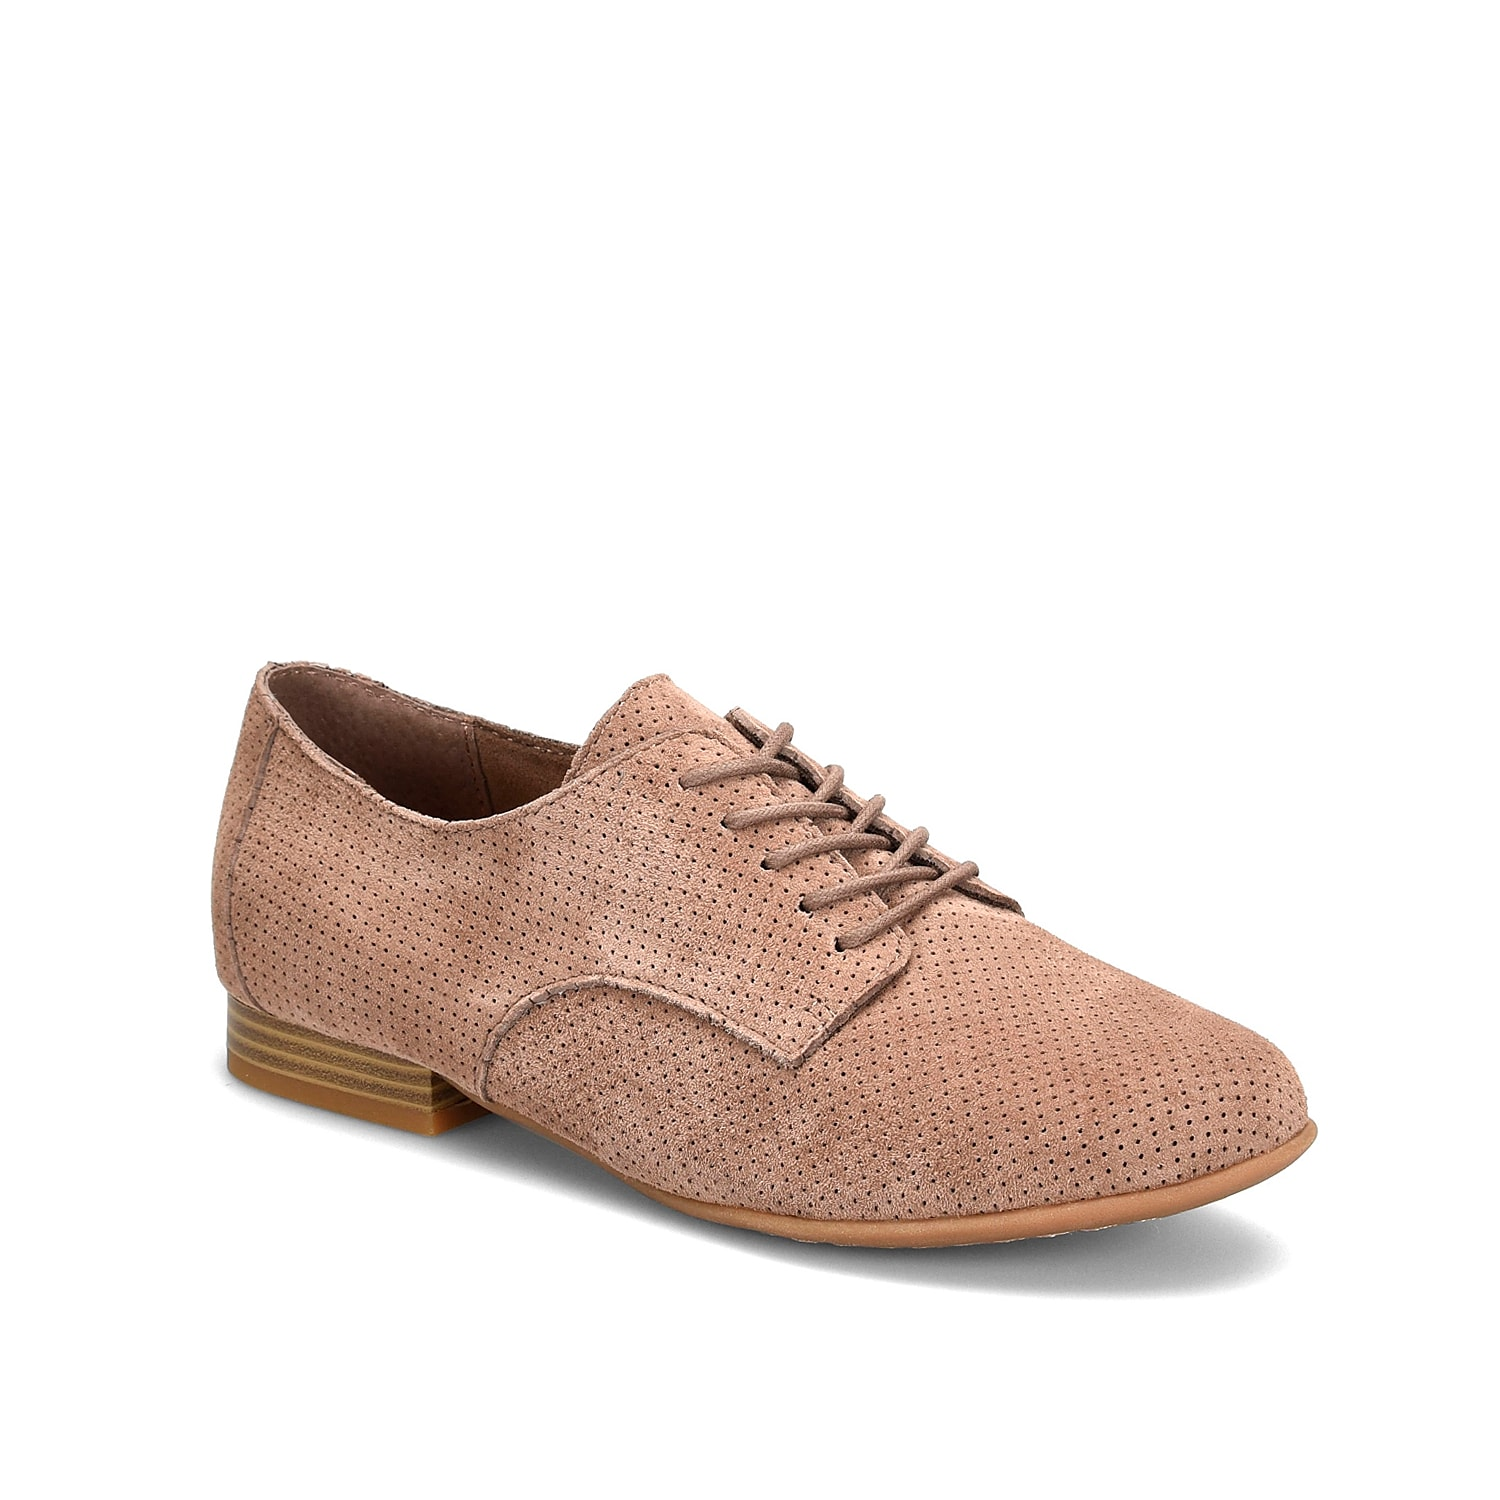 The Camilla Oxford by b.o.c. Born Concept infuses chic elegance into a timeless profile. Made of suede, this shoe is updated with perforated upper, embossed outsole and modest stacked heel.